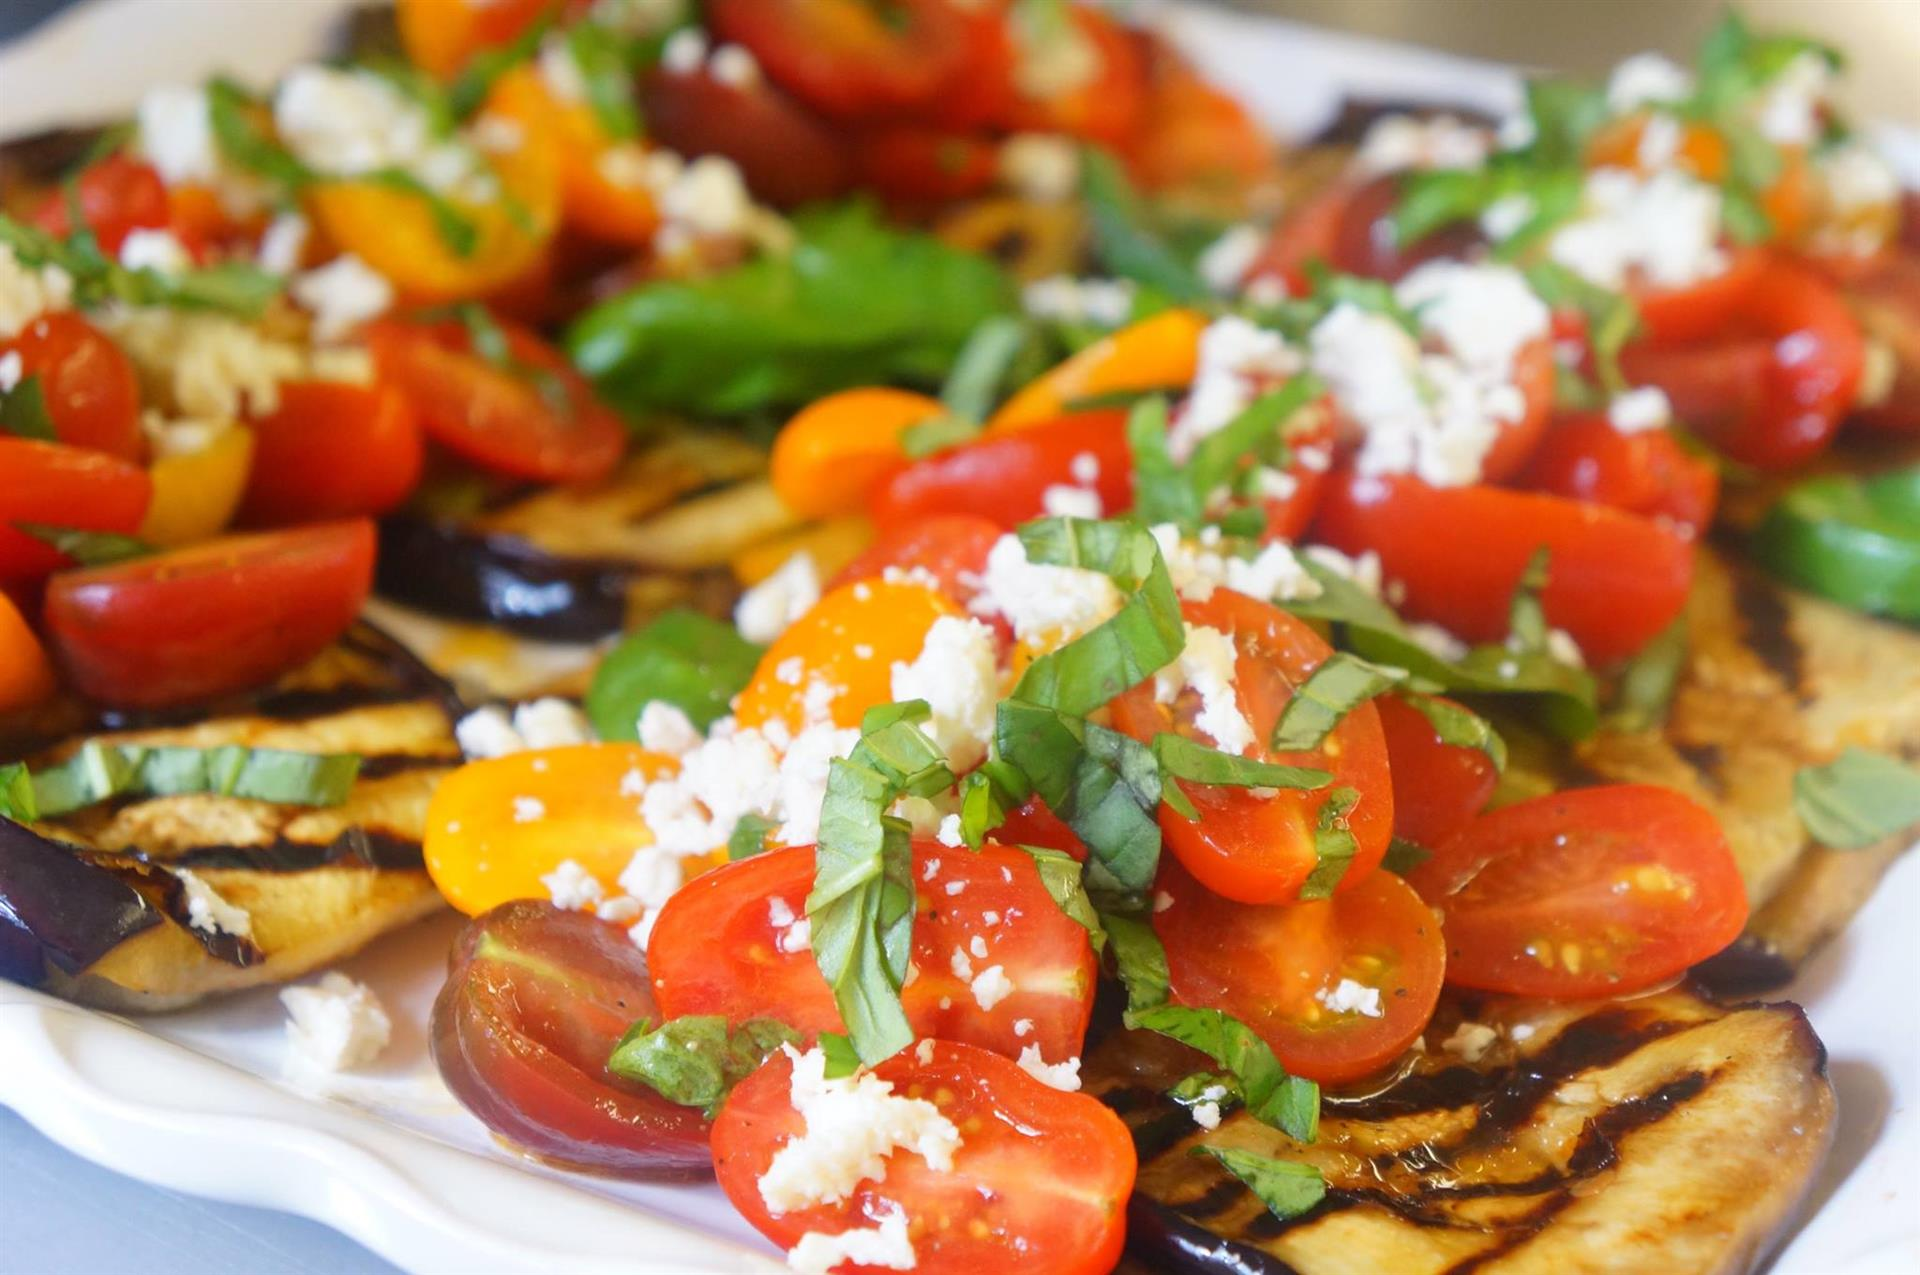 A Bruschetta platter with cherry tomatoes, parsley, and shredded white cheese, topped with vinaigrette sauce